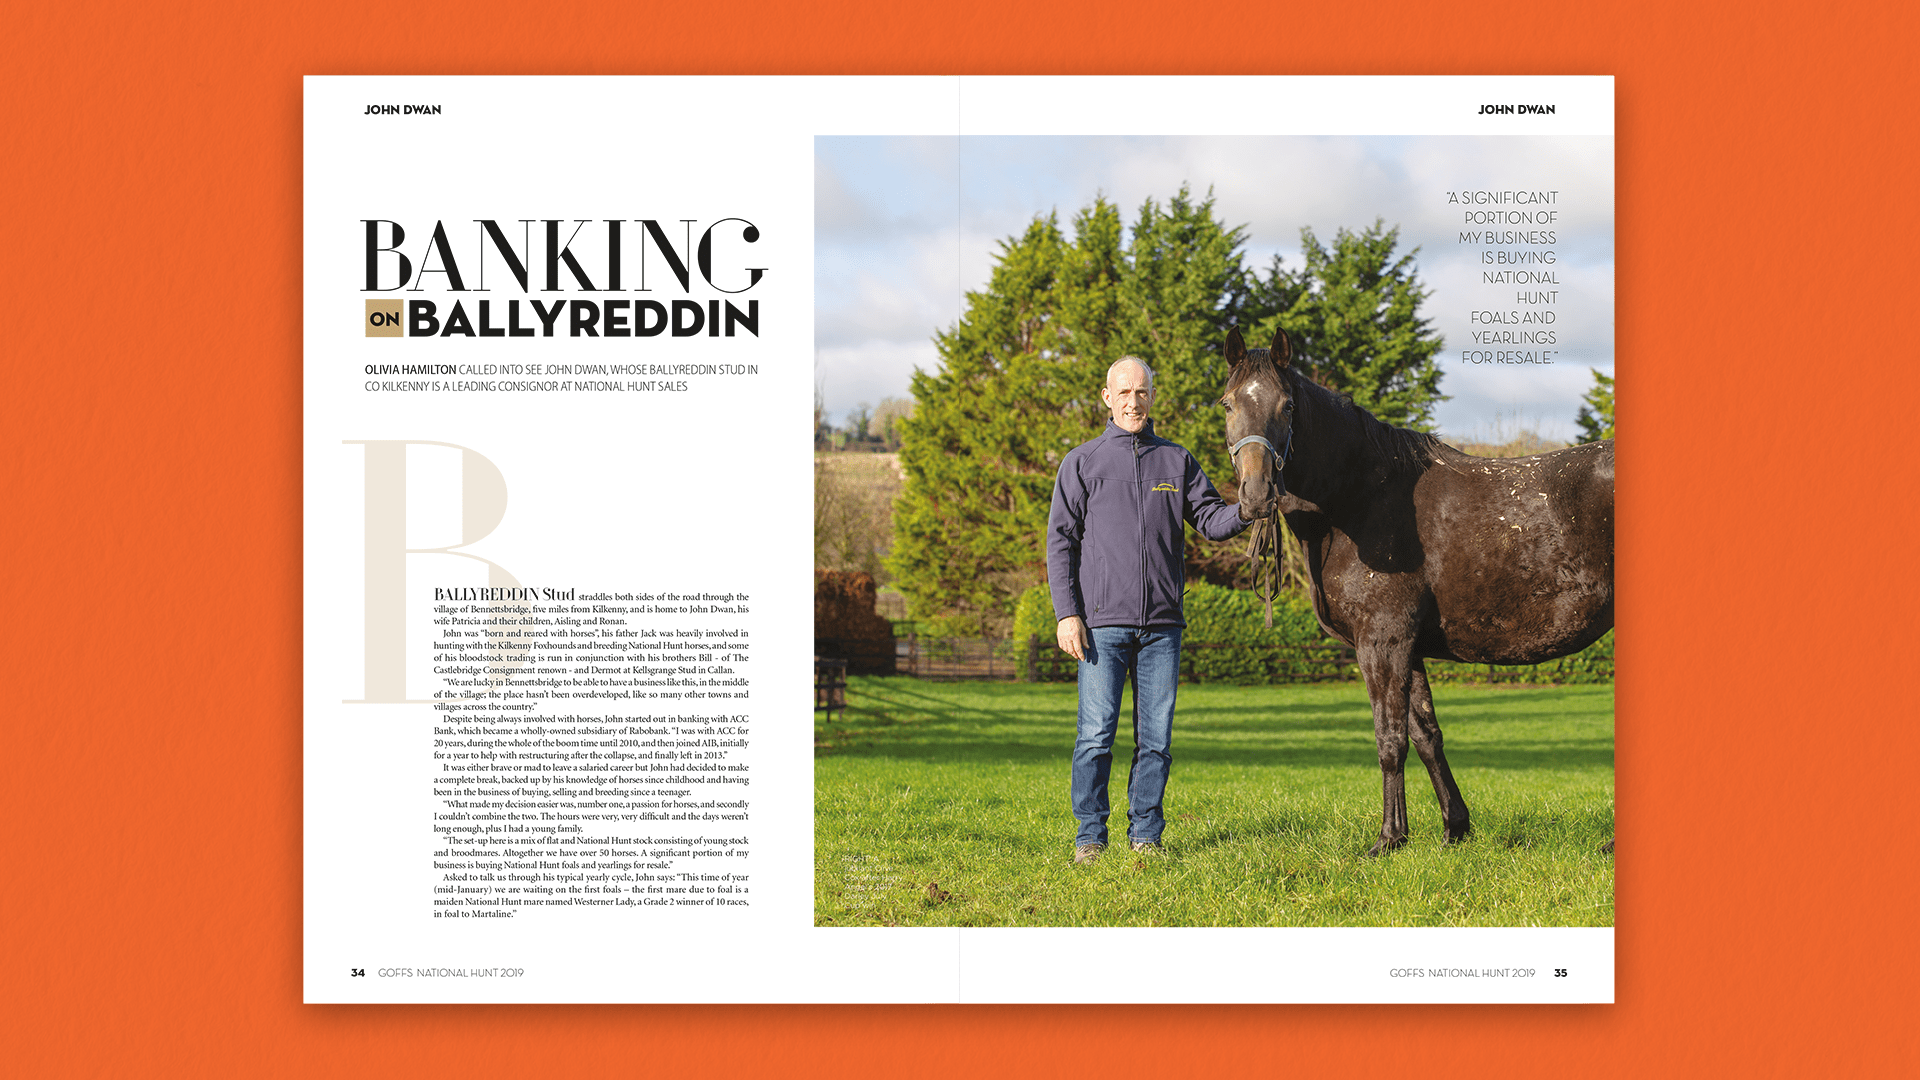 Goffs National Hunt 2019 Feature Spread A